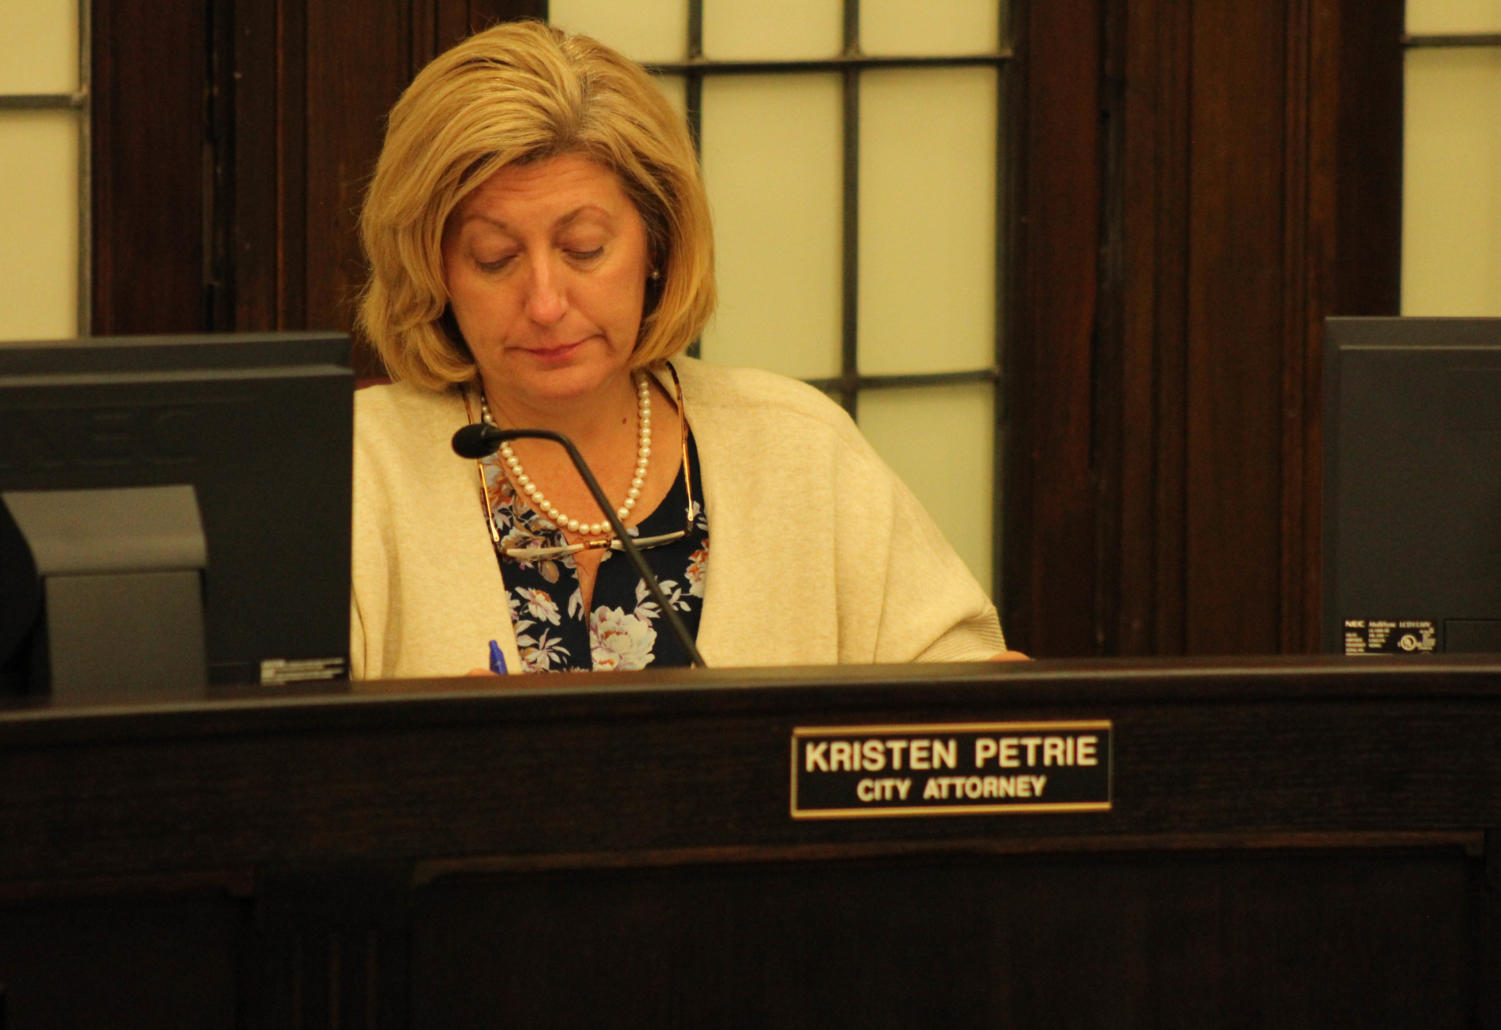 City Attorney Kirsten Petrie discusses conditions of potential liquor license for the Crafty Coop.